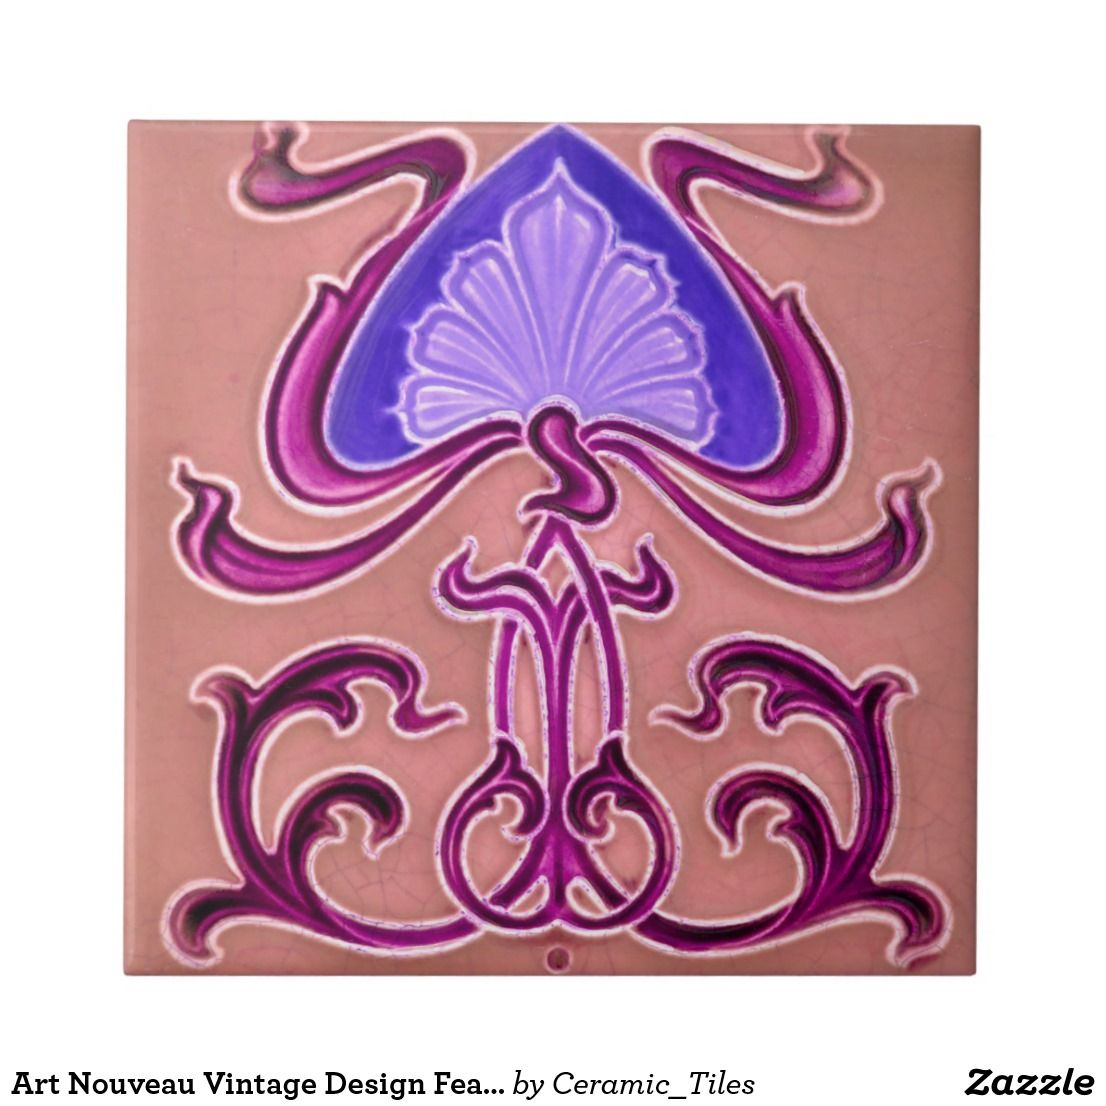 Art nouveau vintage design feature tile 2 sizes ceramics colors art nouveau vintage design feature tile 2 sizes doublecrazyfo Images